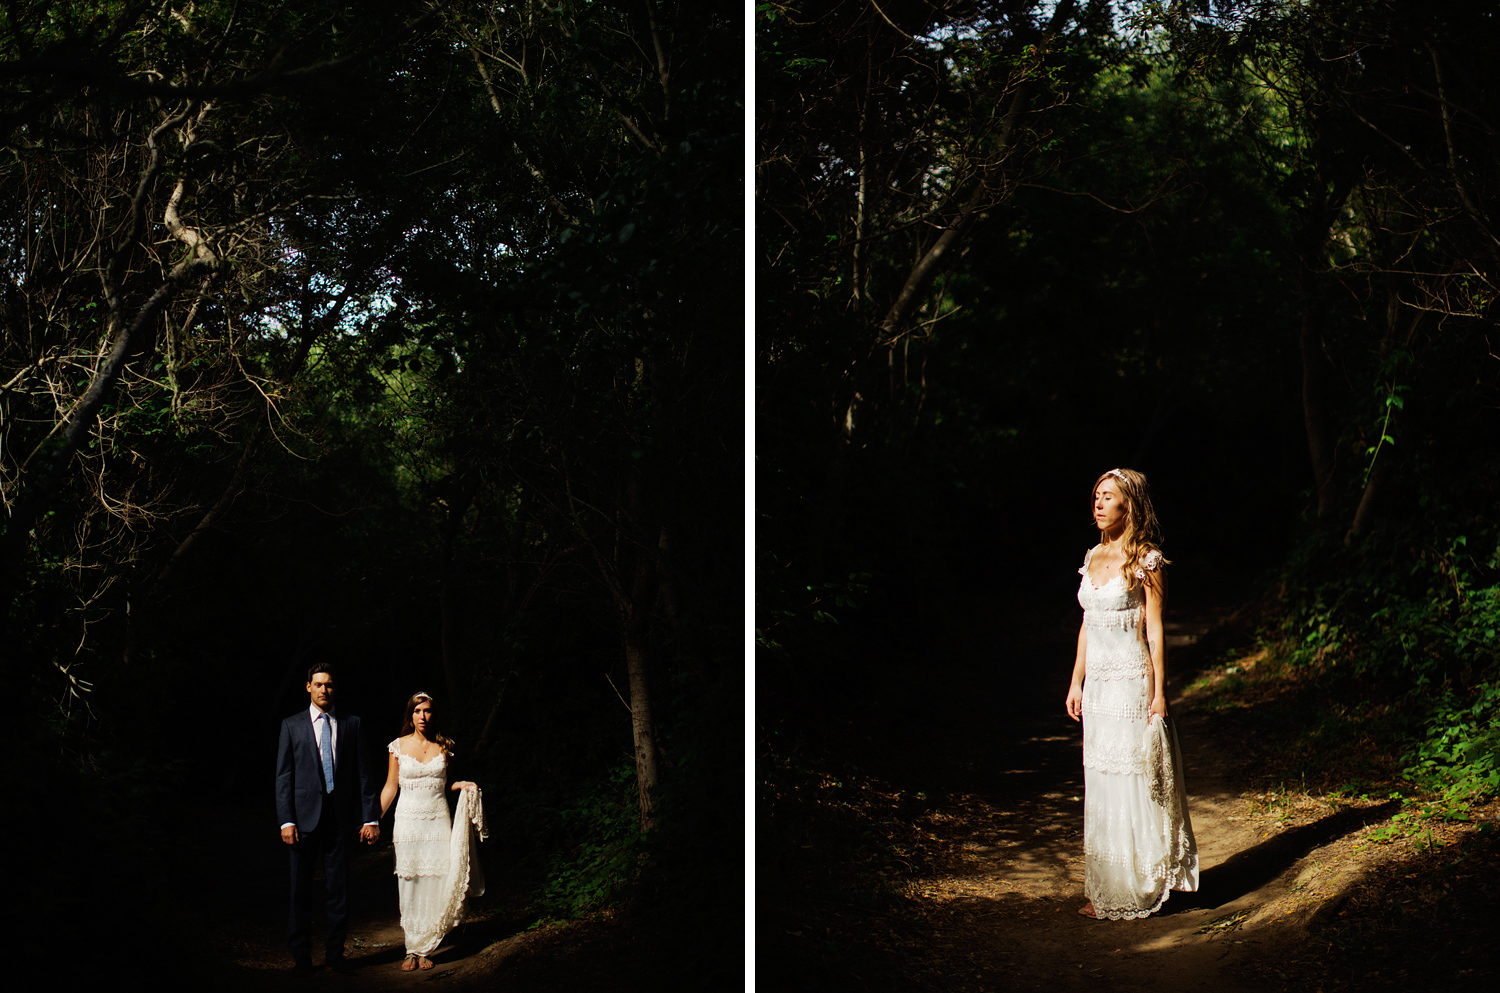 keblog-big-sur-wedding-ryan-flynn-photography-0048.JPG